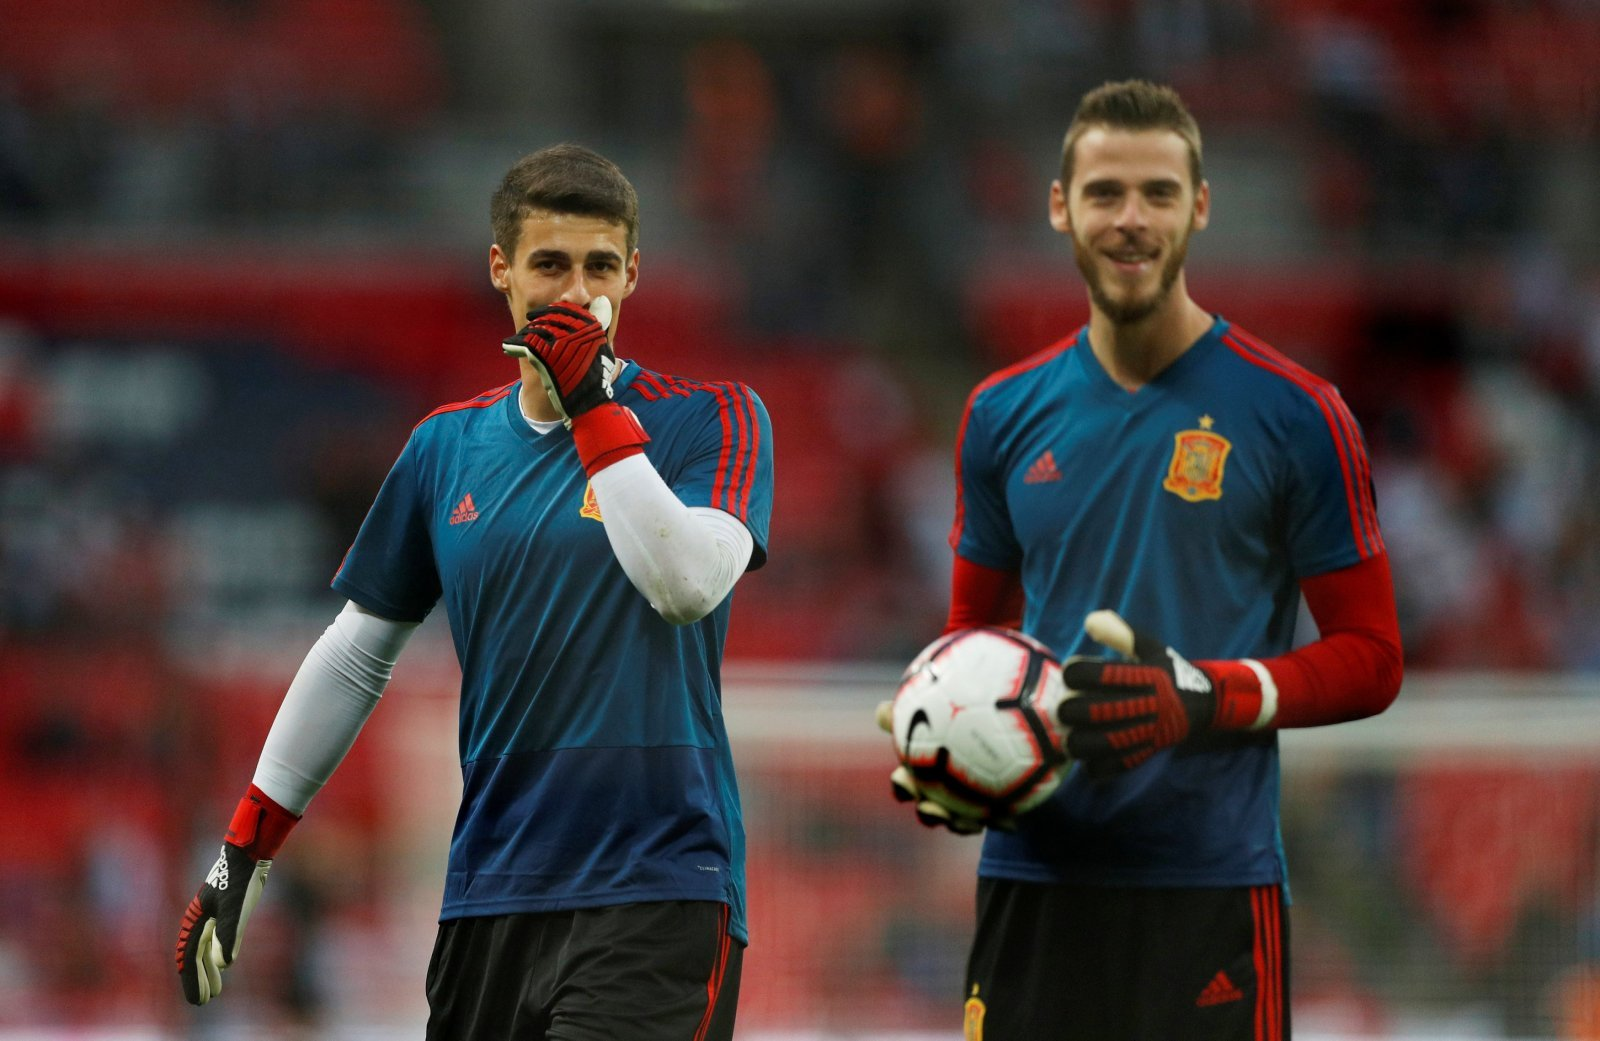 Introducing: The 'keeper Man United should have signed, Kepa Arrizabalaga